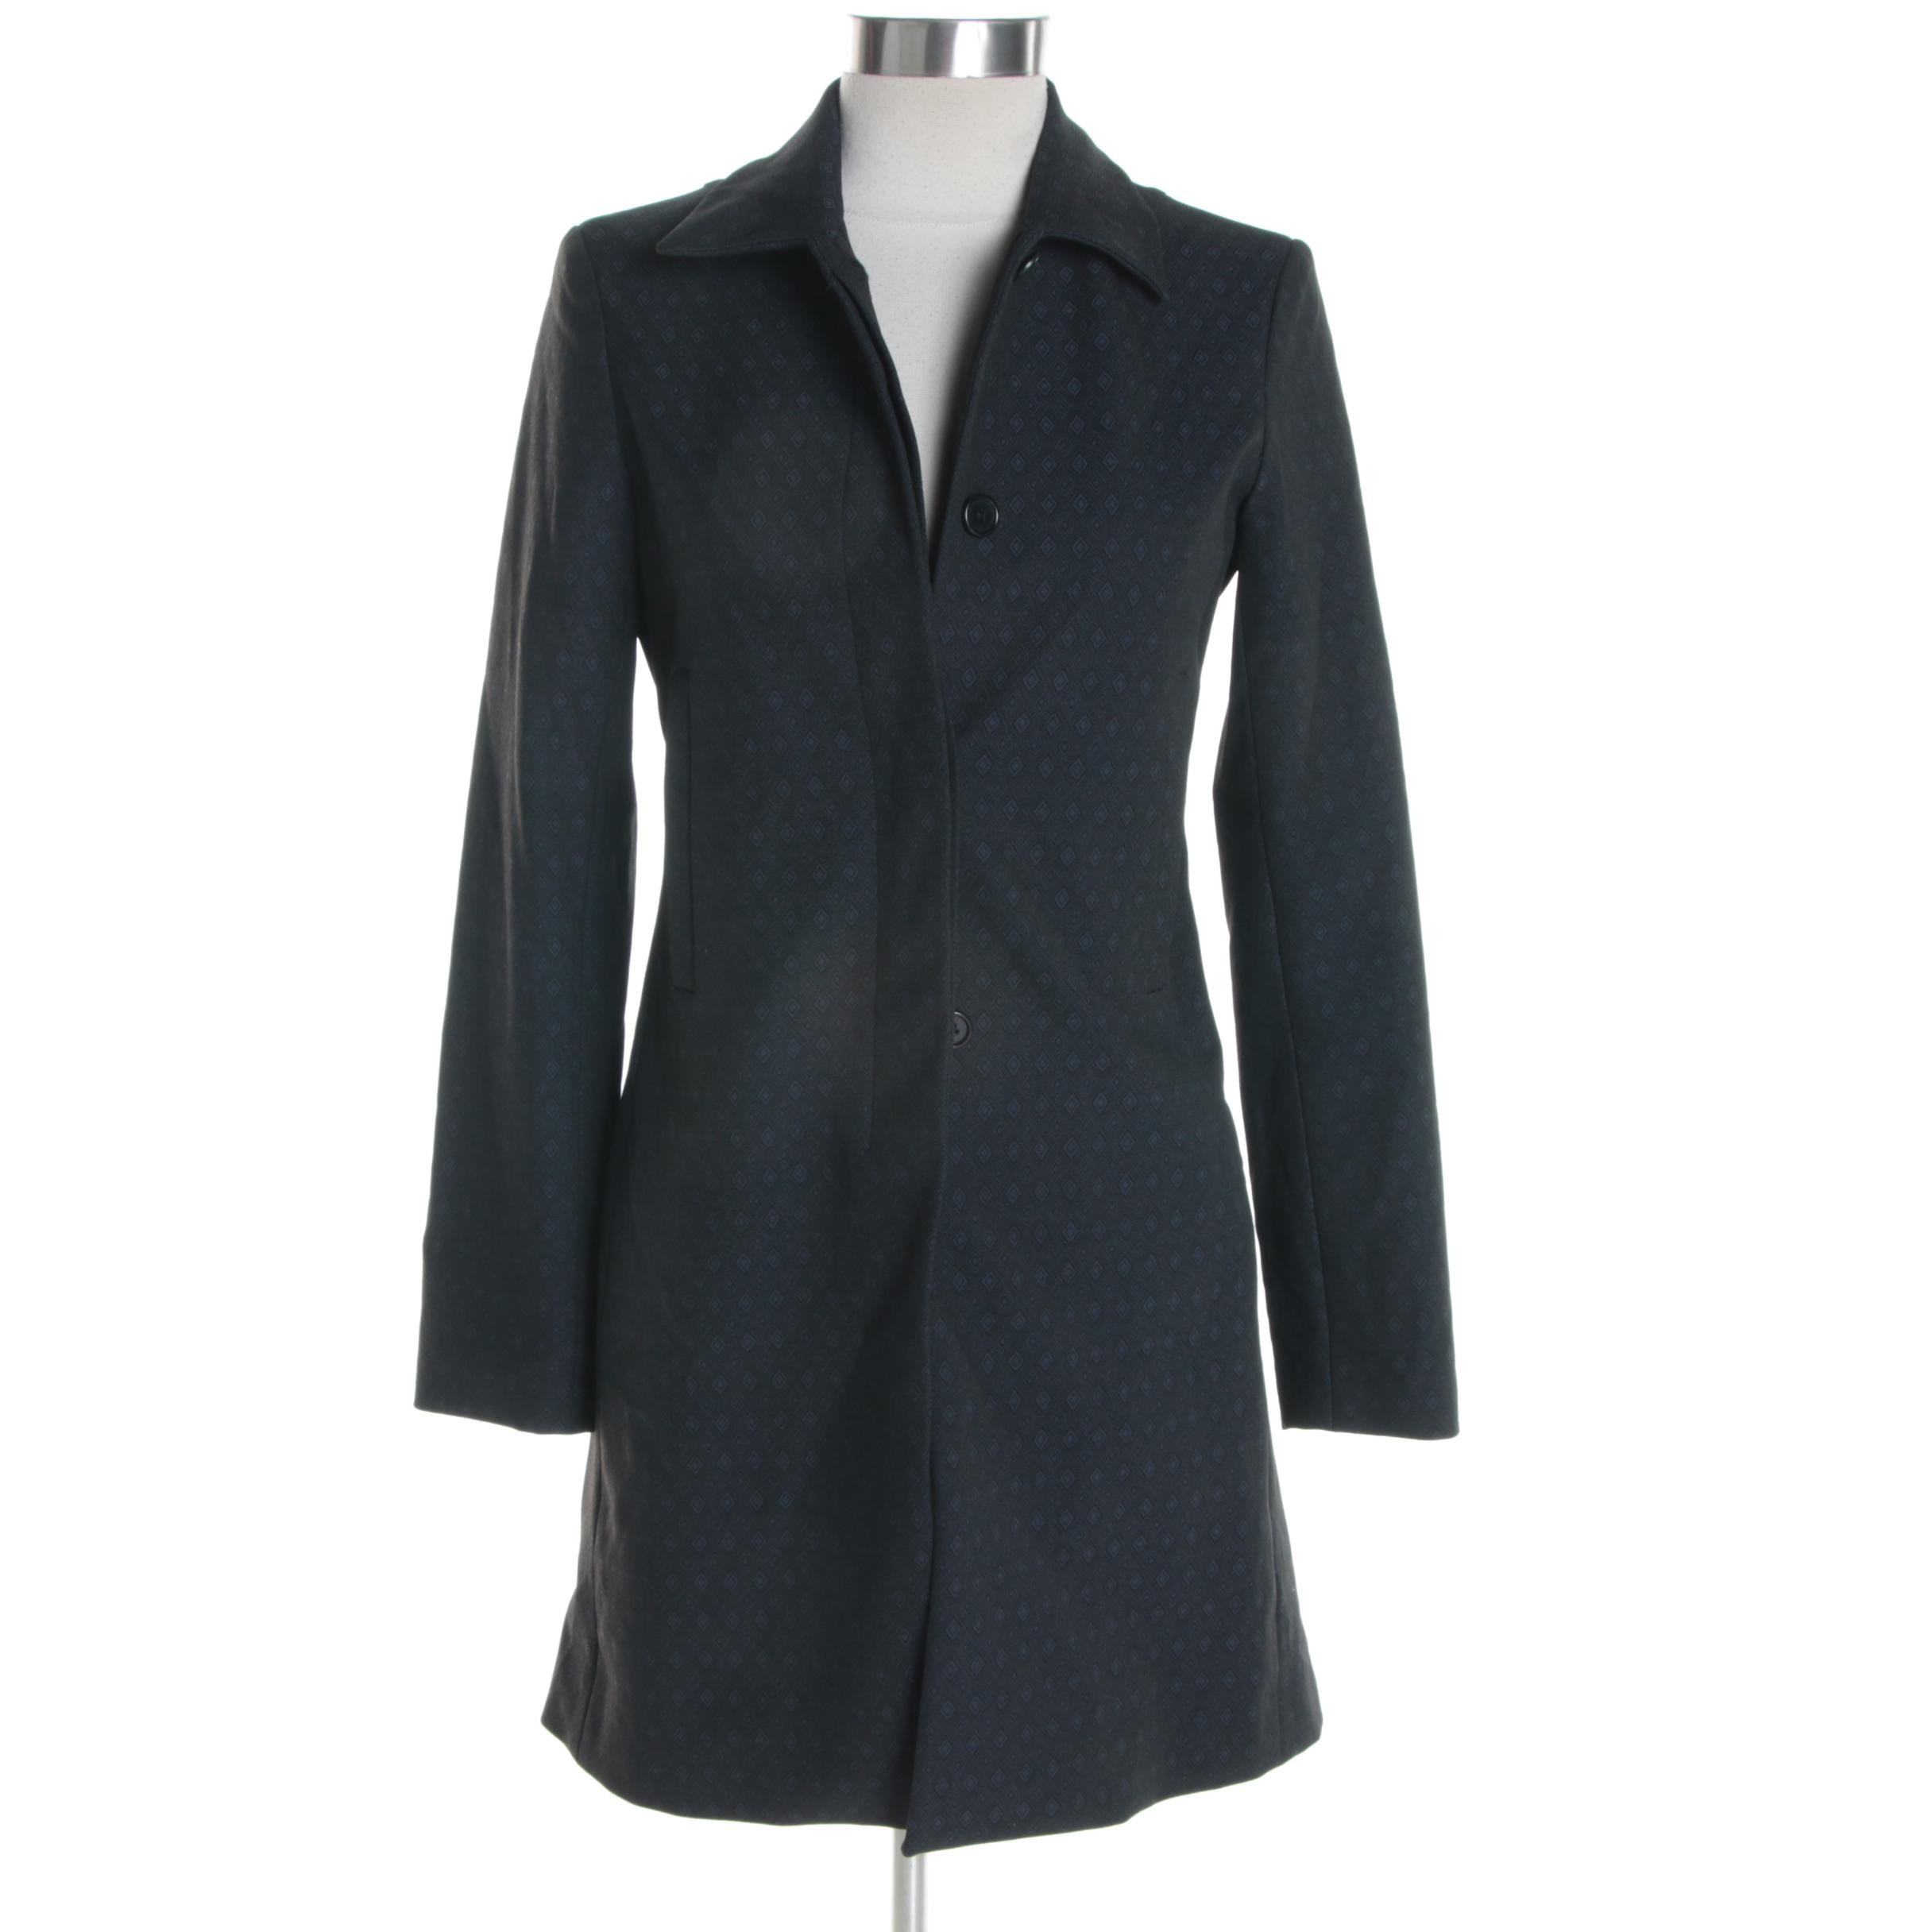 Women's Theory Black and Navy Poly-Blend Jacket